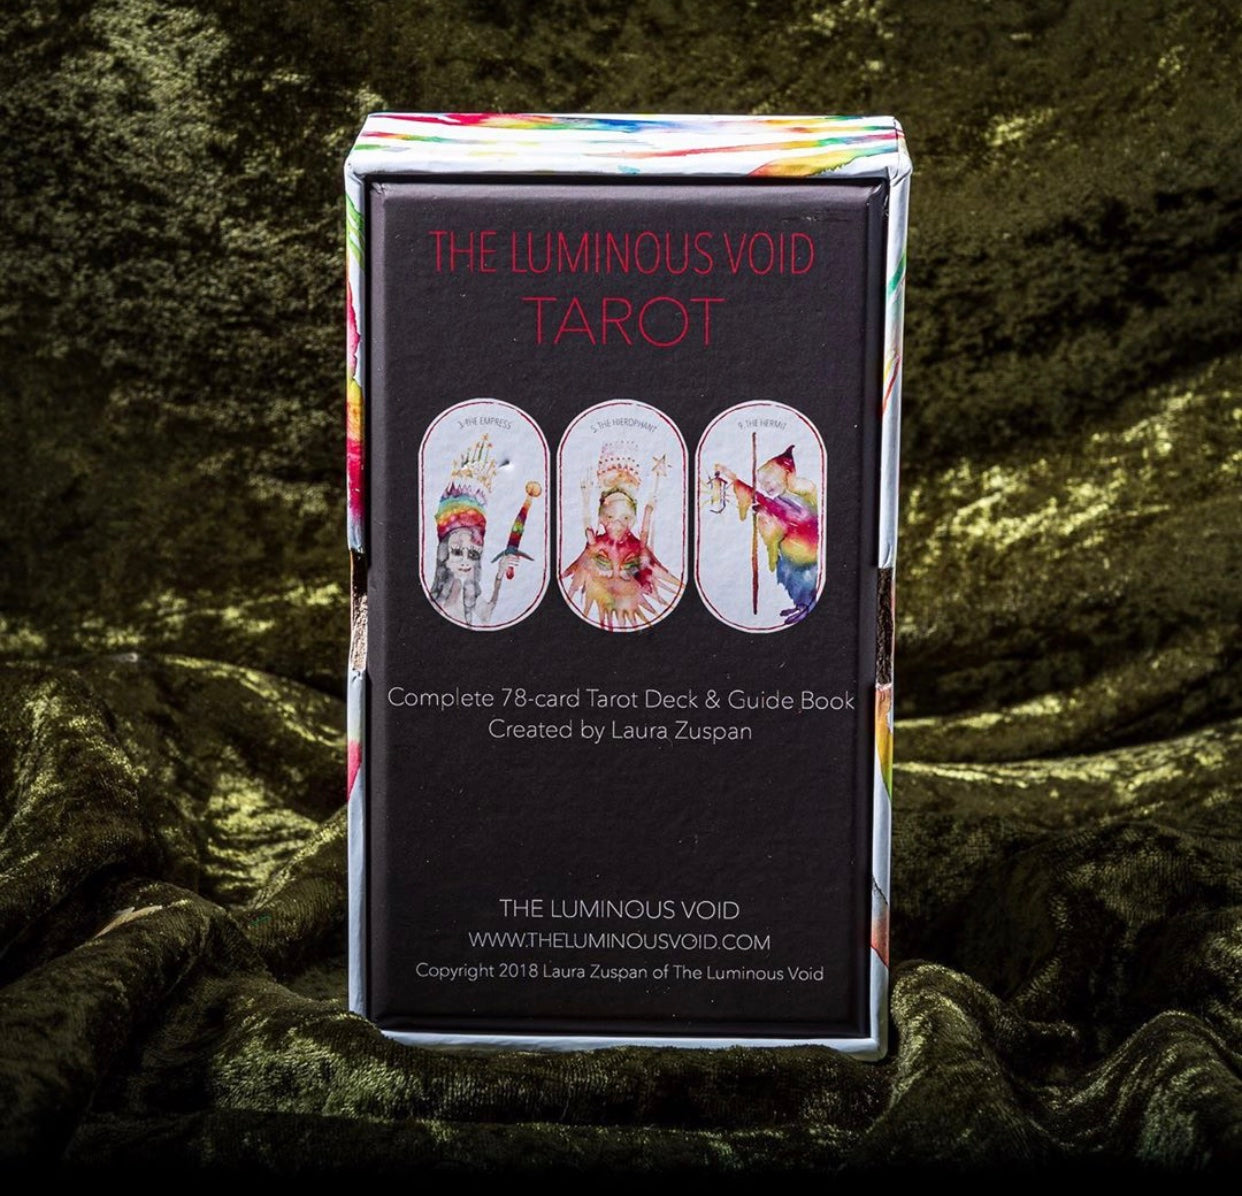 Luminous Void Tarot Deck | The Luminous Void | Theluminousvoid